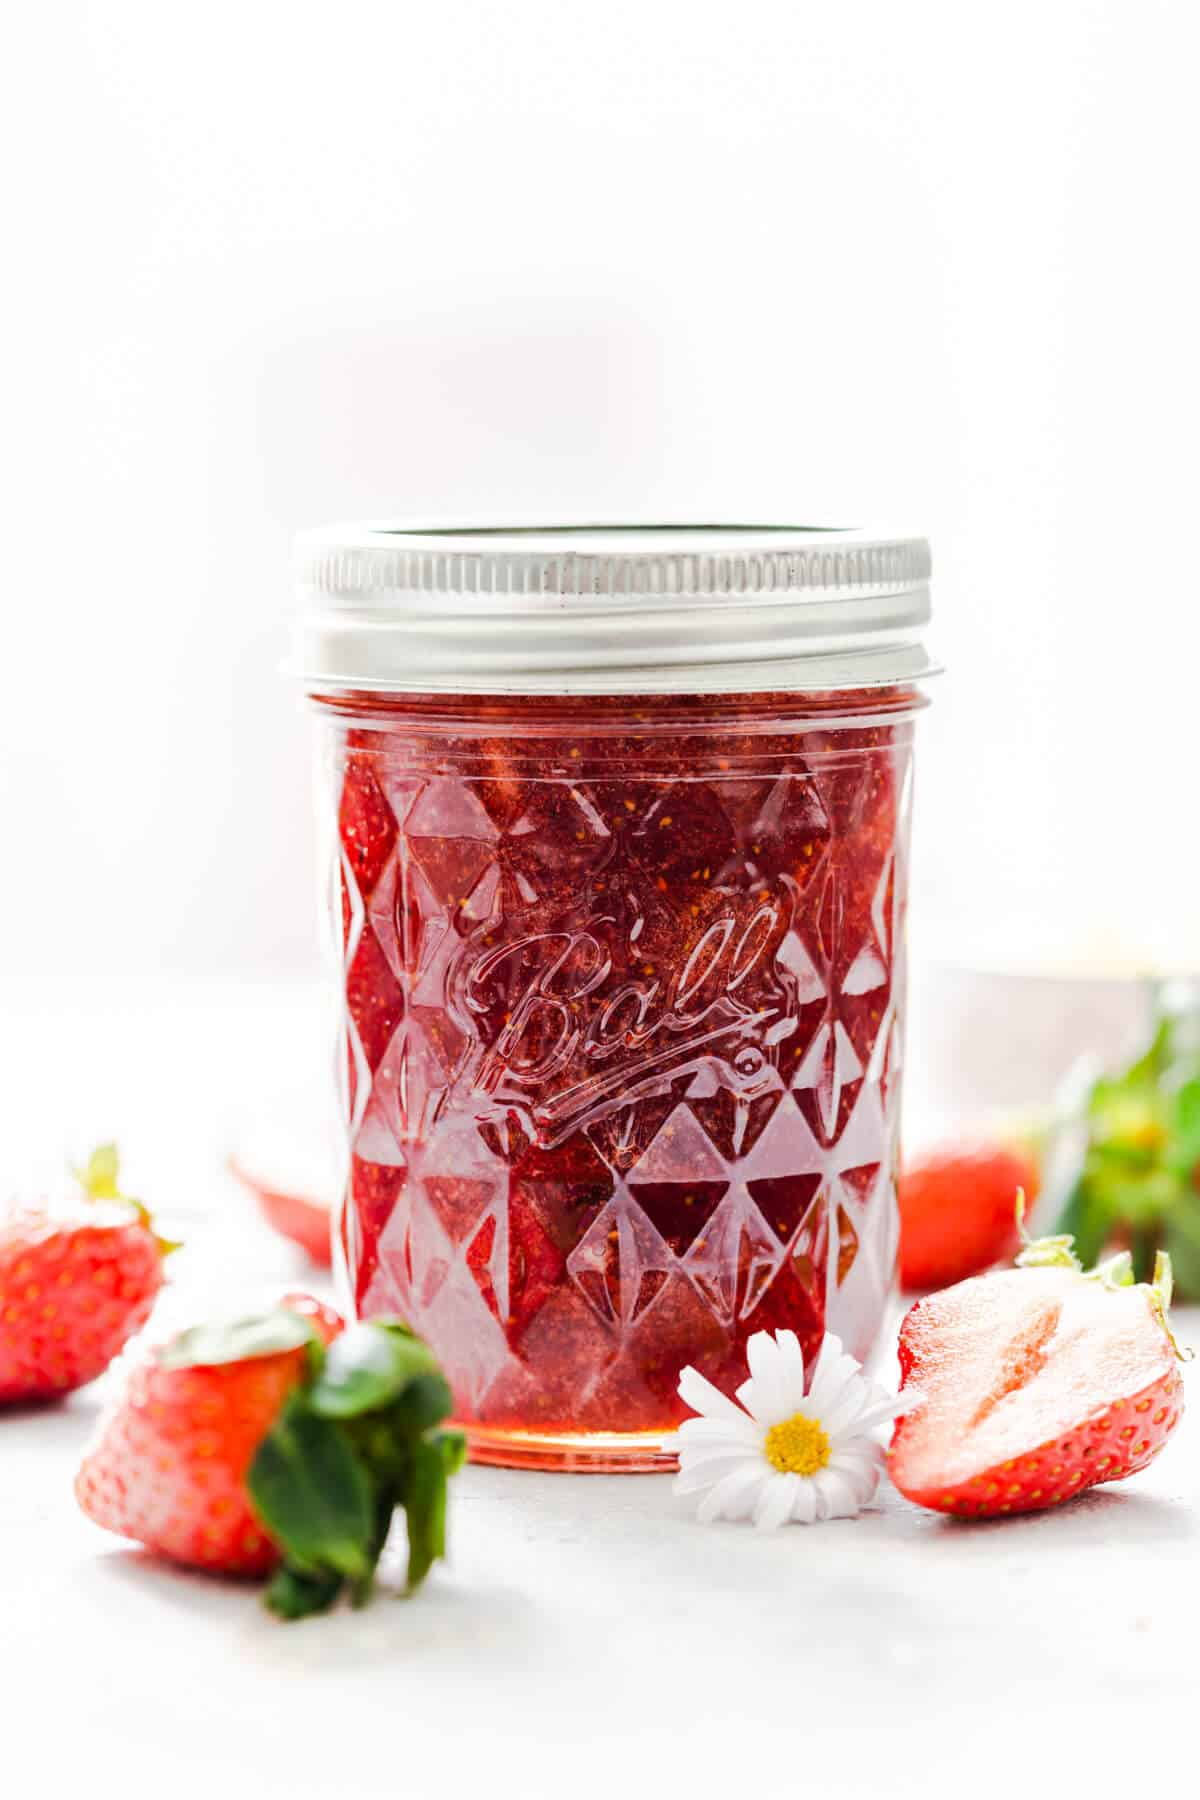 straight ahead shot at a jar with strawberry jam and some strawberries around it